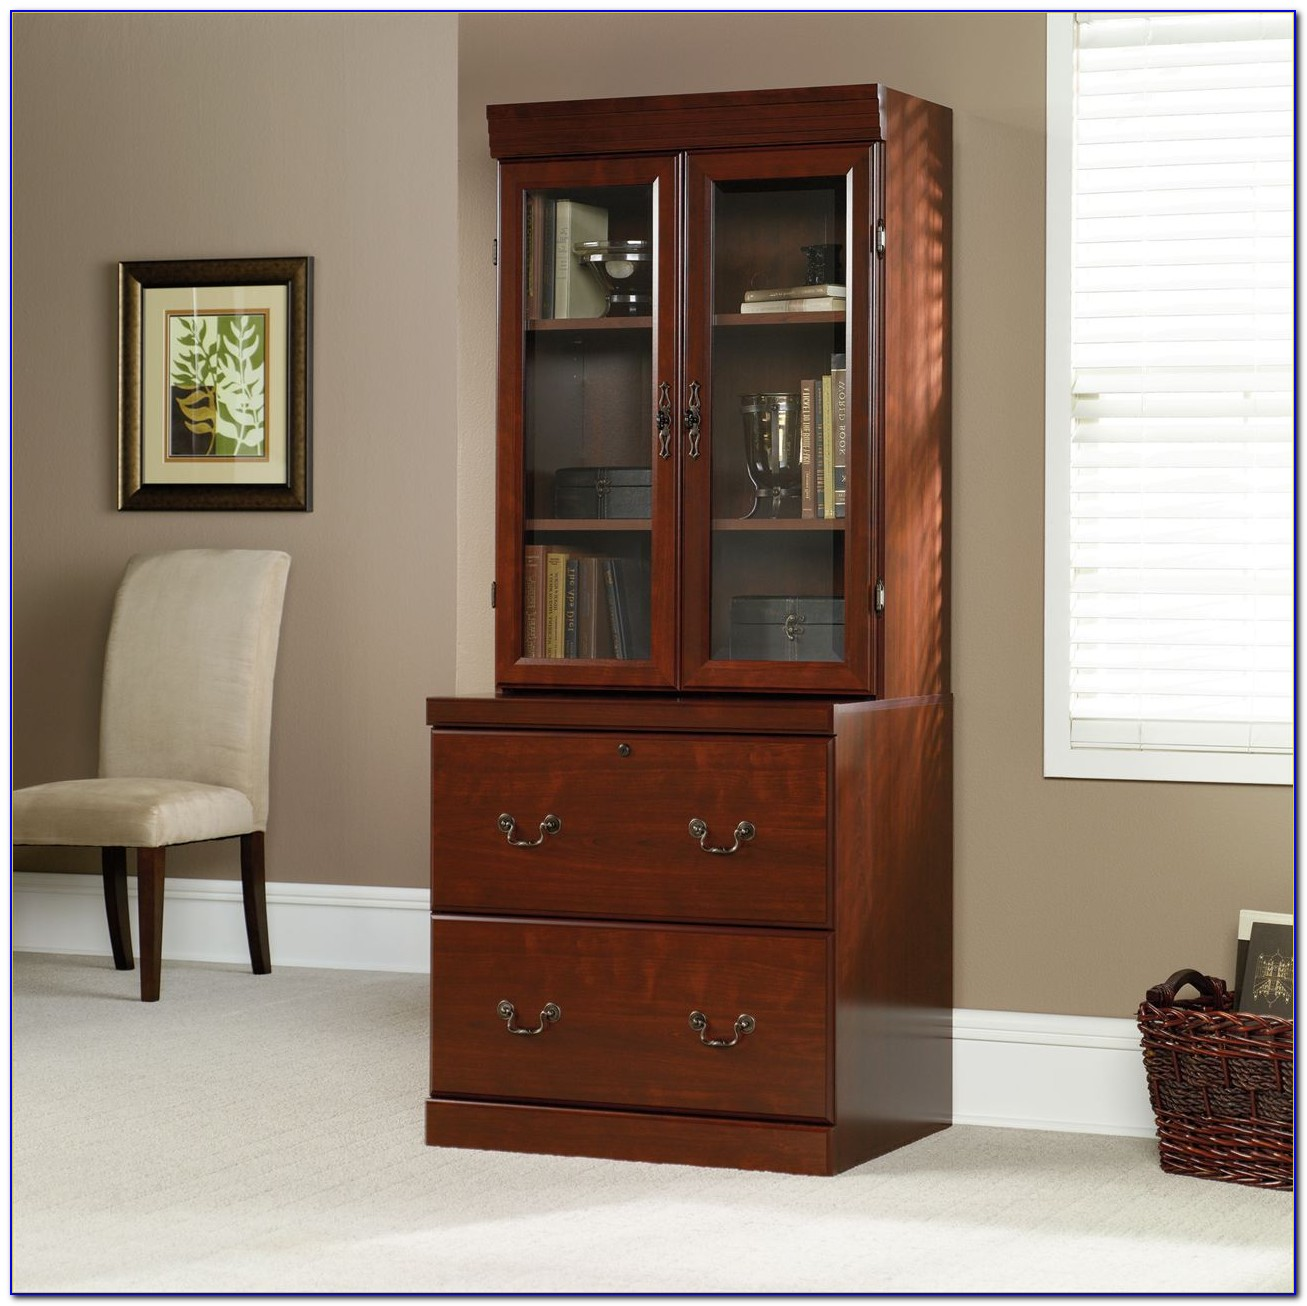 Sauder Office Furniture Assembly Instructions